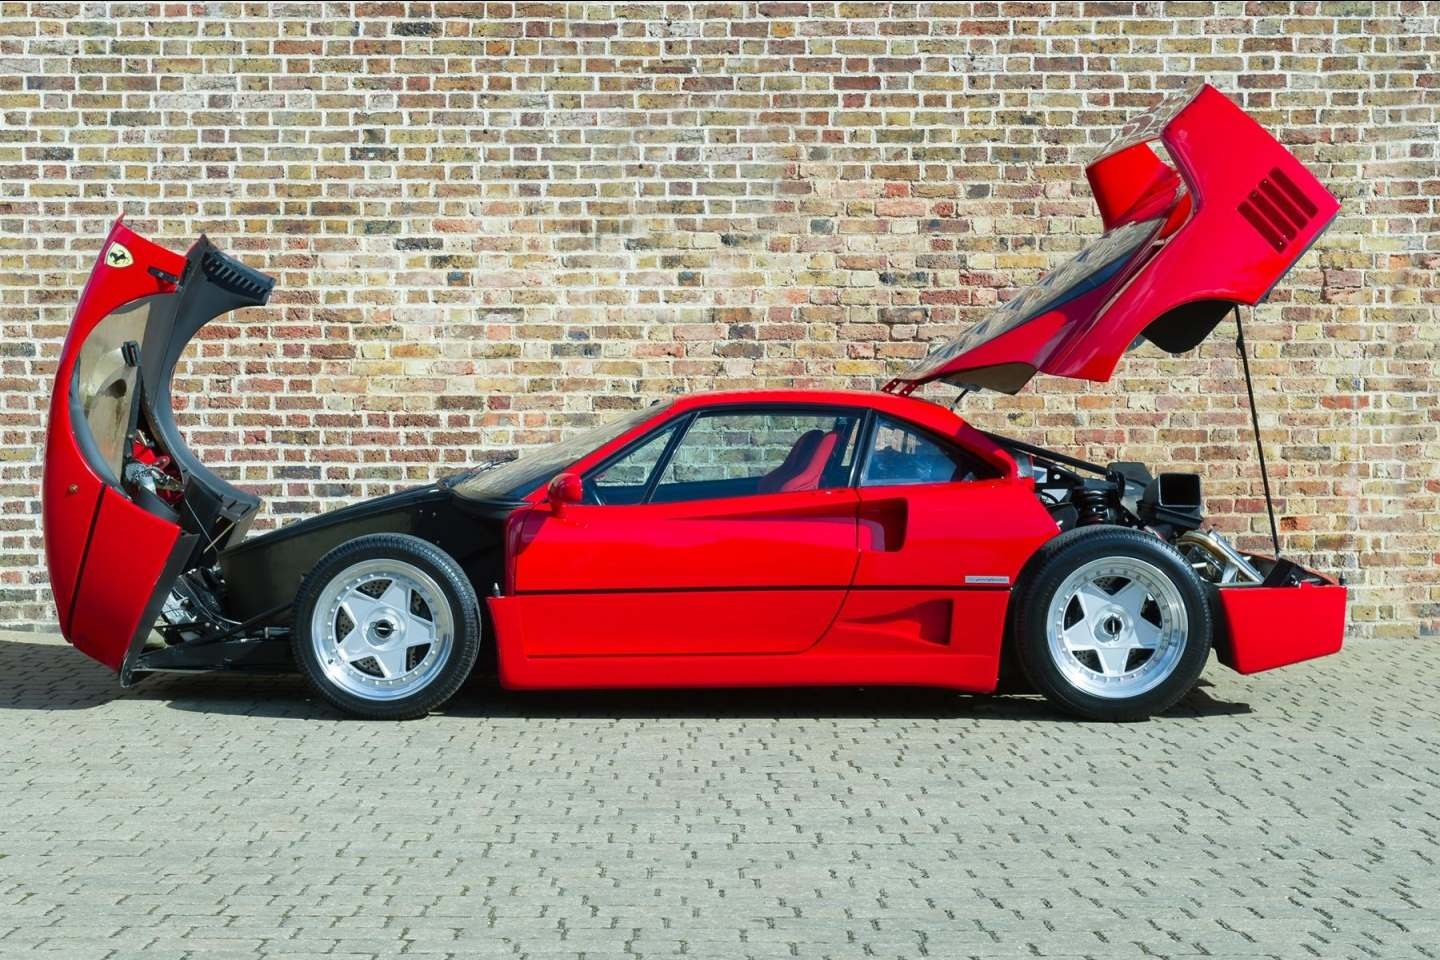 Ferrari F40 For Sale >> Ferrari F40 For Sale Vehicle Sales Dk Engineering